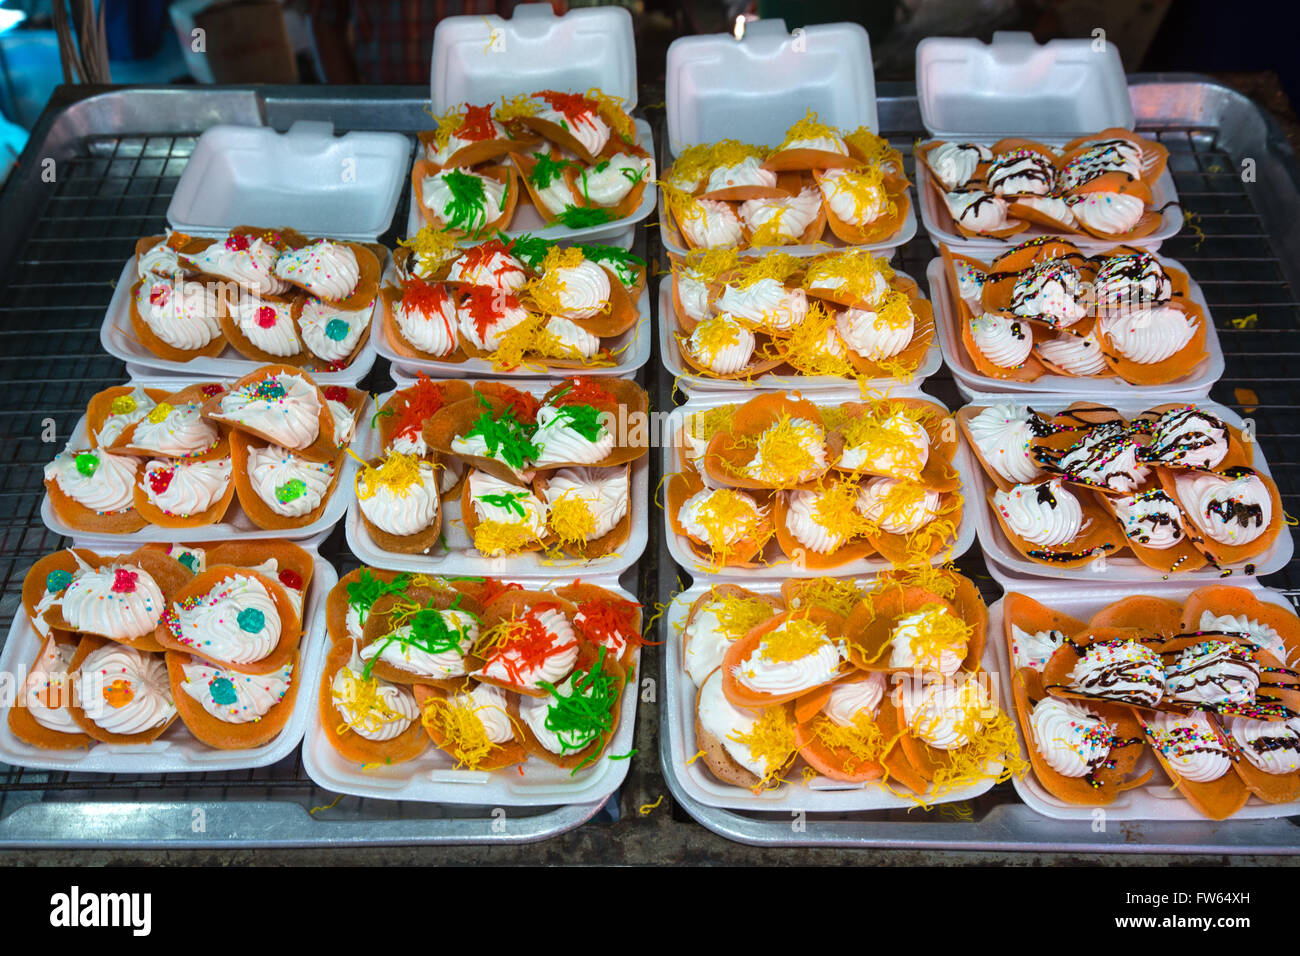 Market stall with various Thai sweets, food stall, food for sale at a night market, Thailand - Stock Image